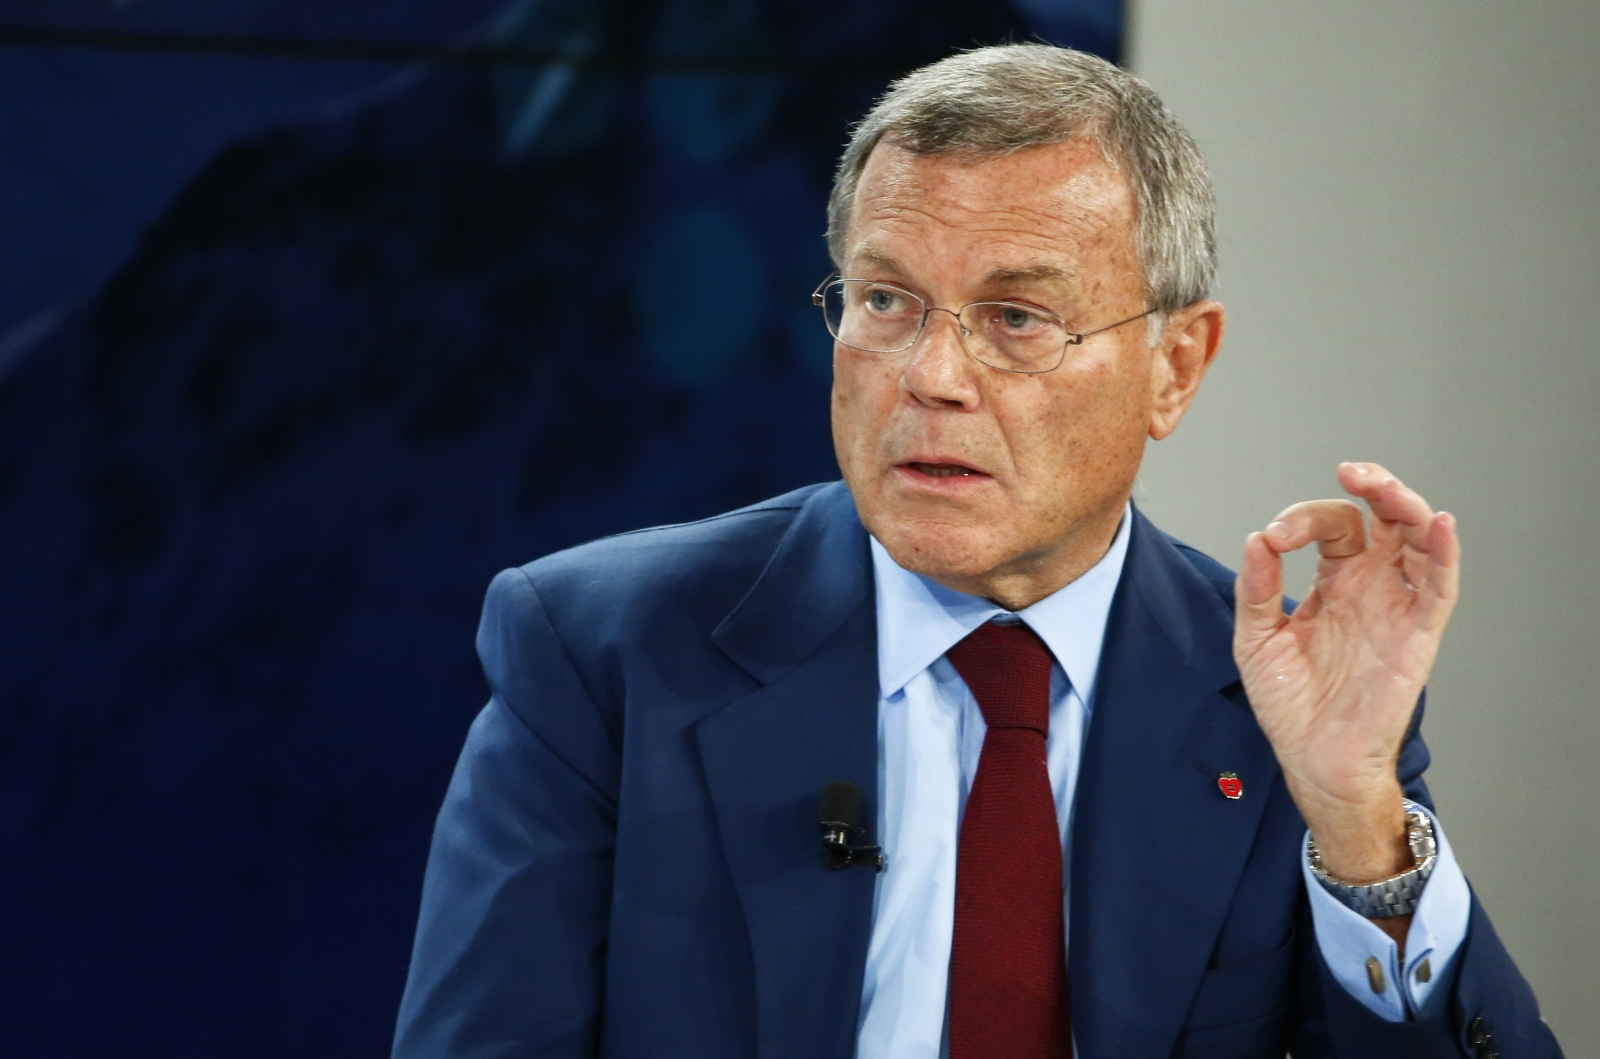 Sir Martin Sorrell, Chief Executive Officer of WPP, gestures during the session \'The BBC World Debate: A Richer World, but for Whom?\' in the Swiss mountain resort of Davos January 23, 2015.